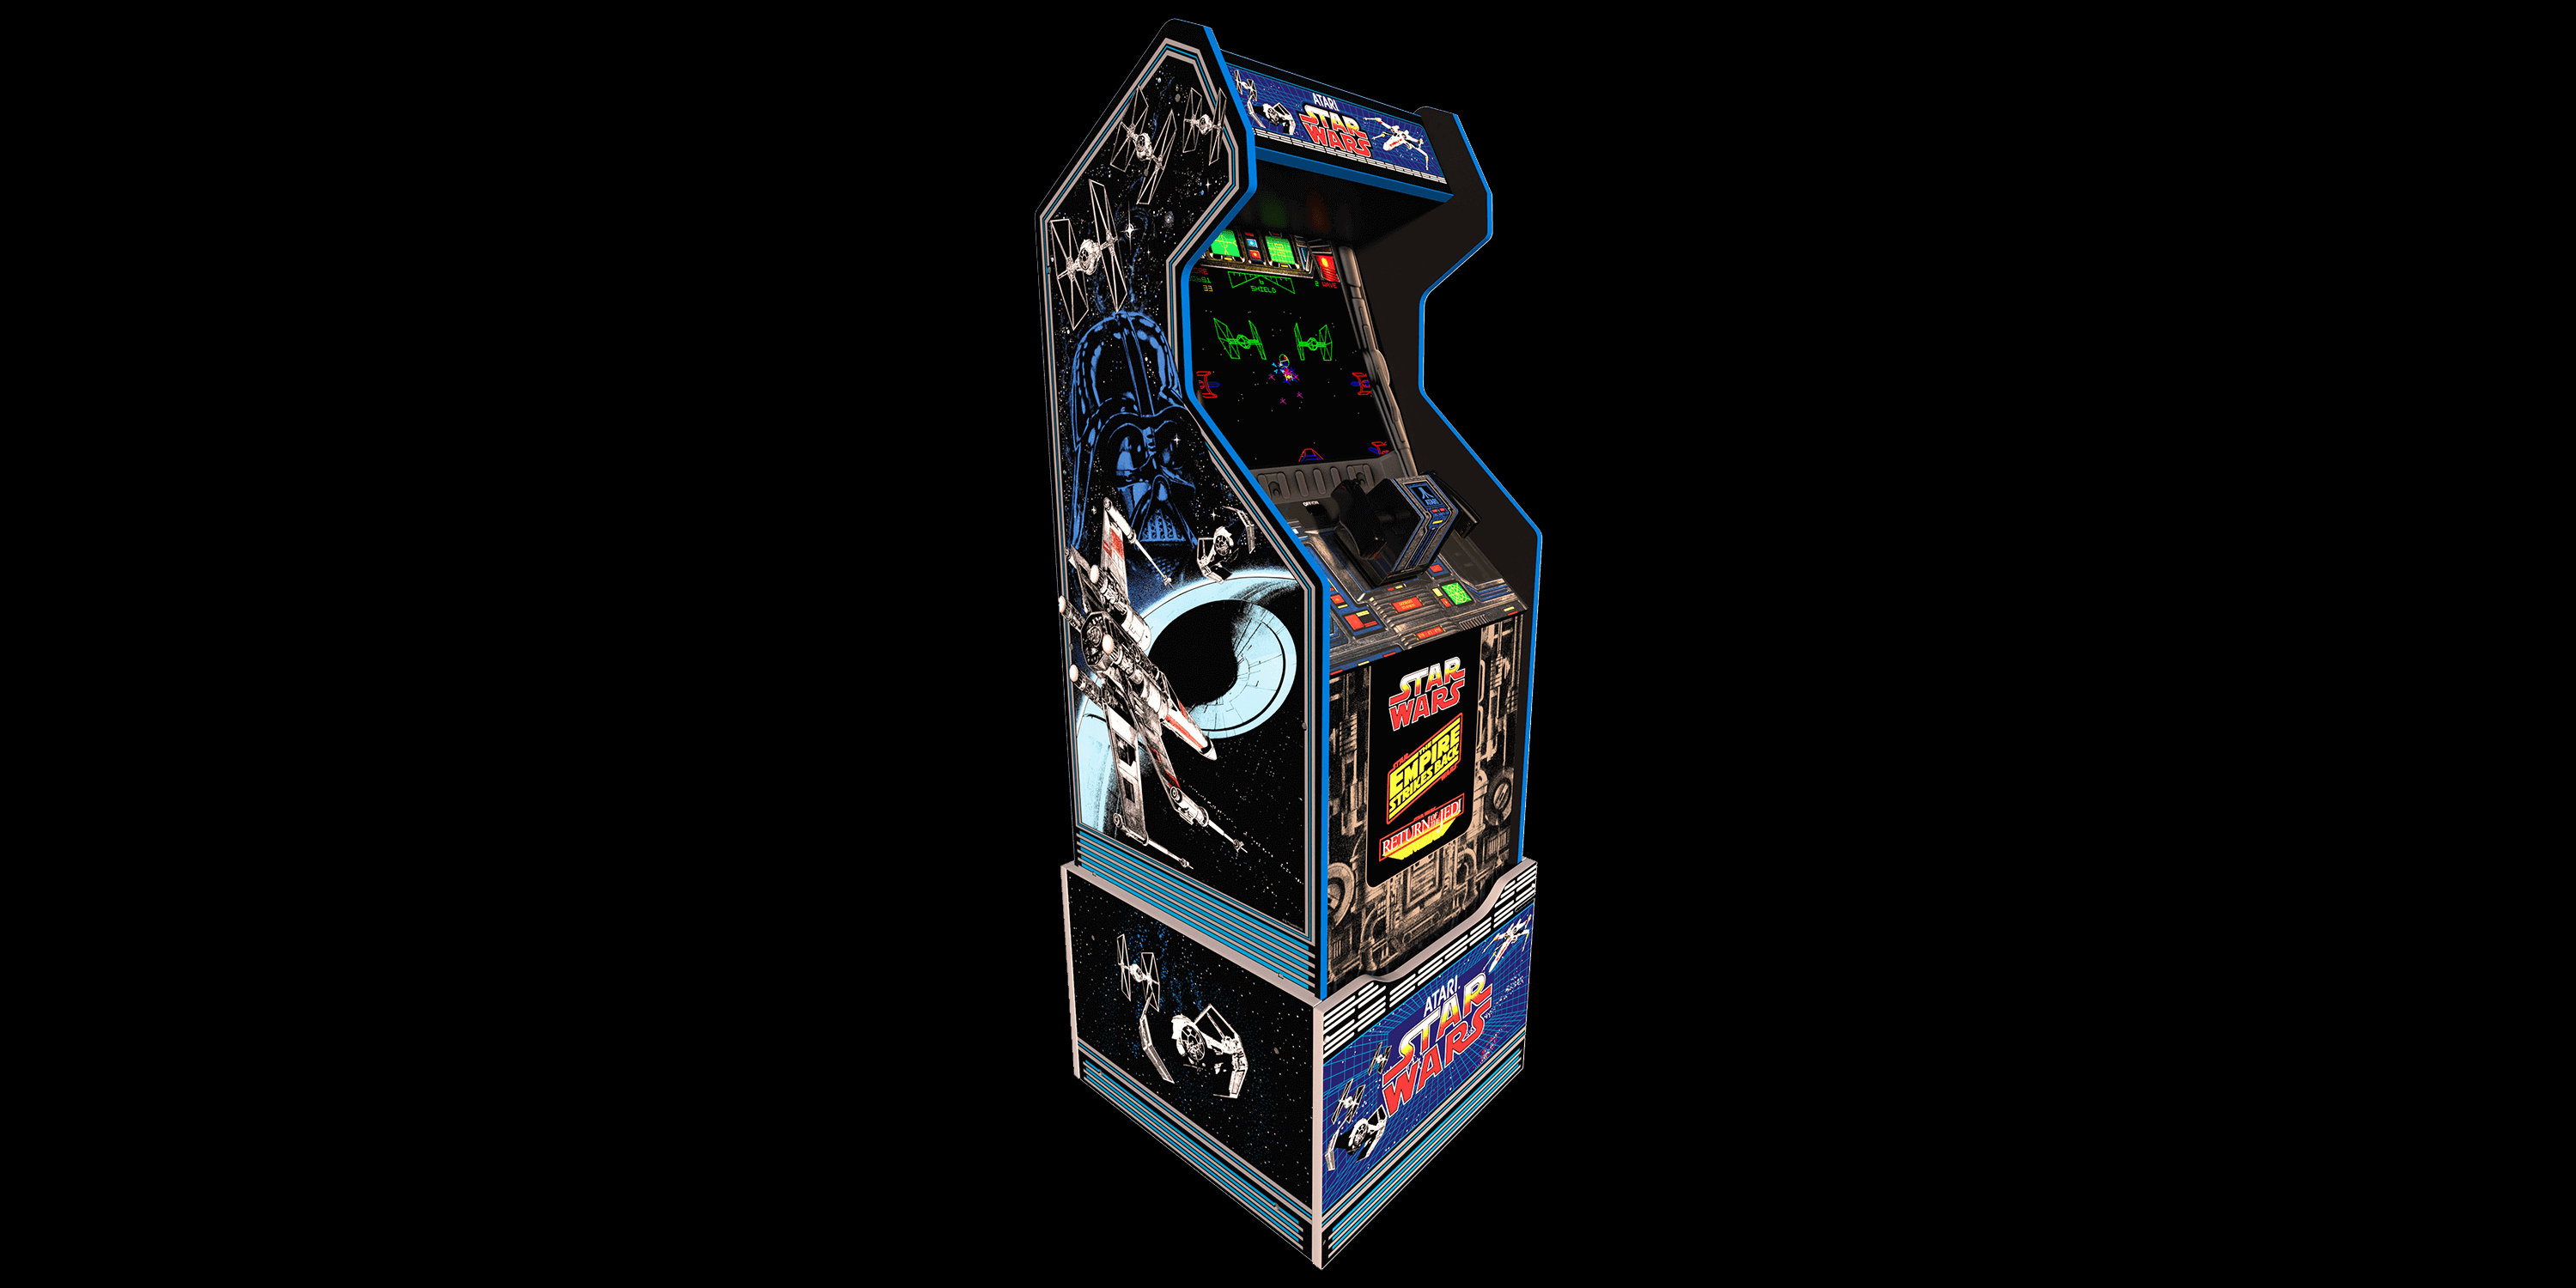 This New 'Star Wars' Arcade Machine Is Available to Pre-Order